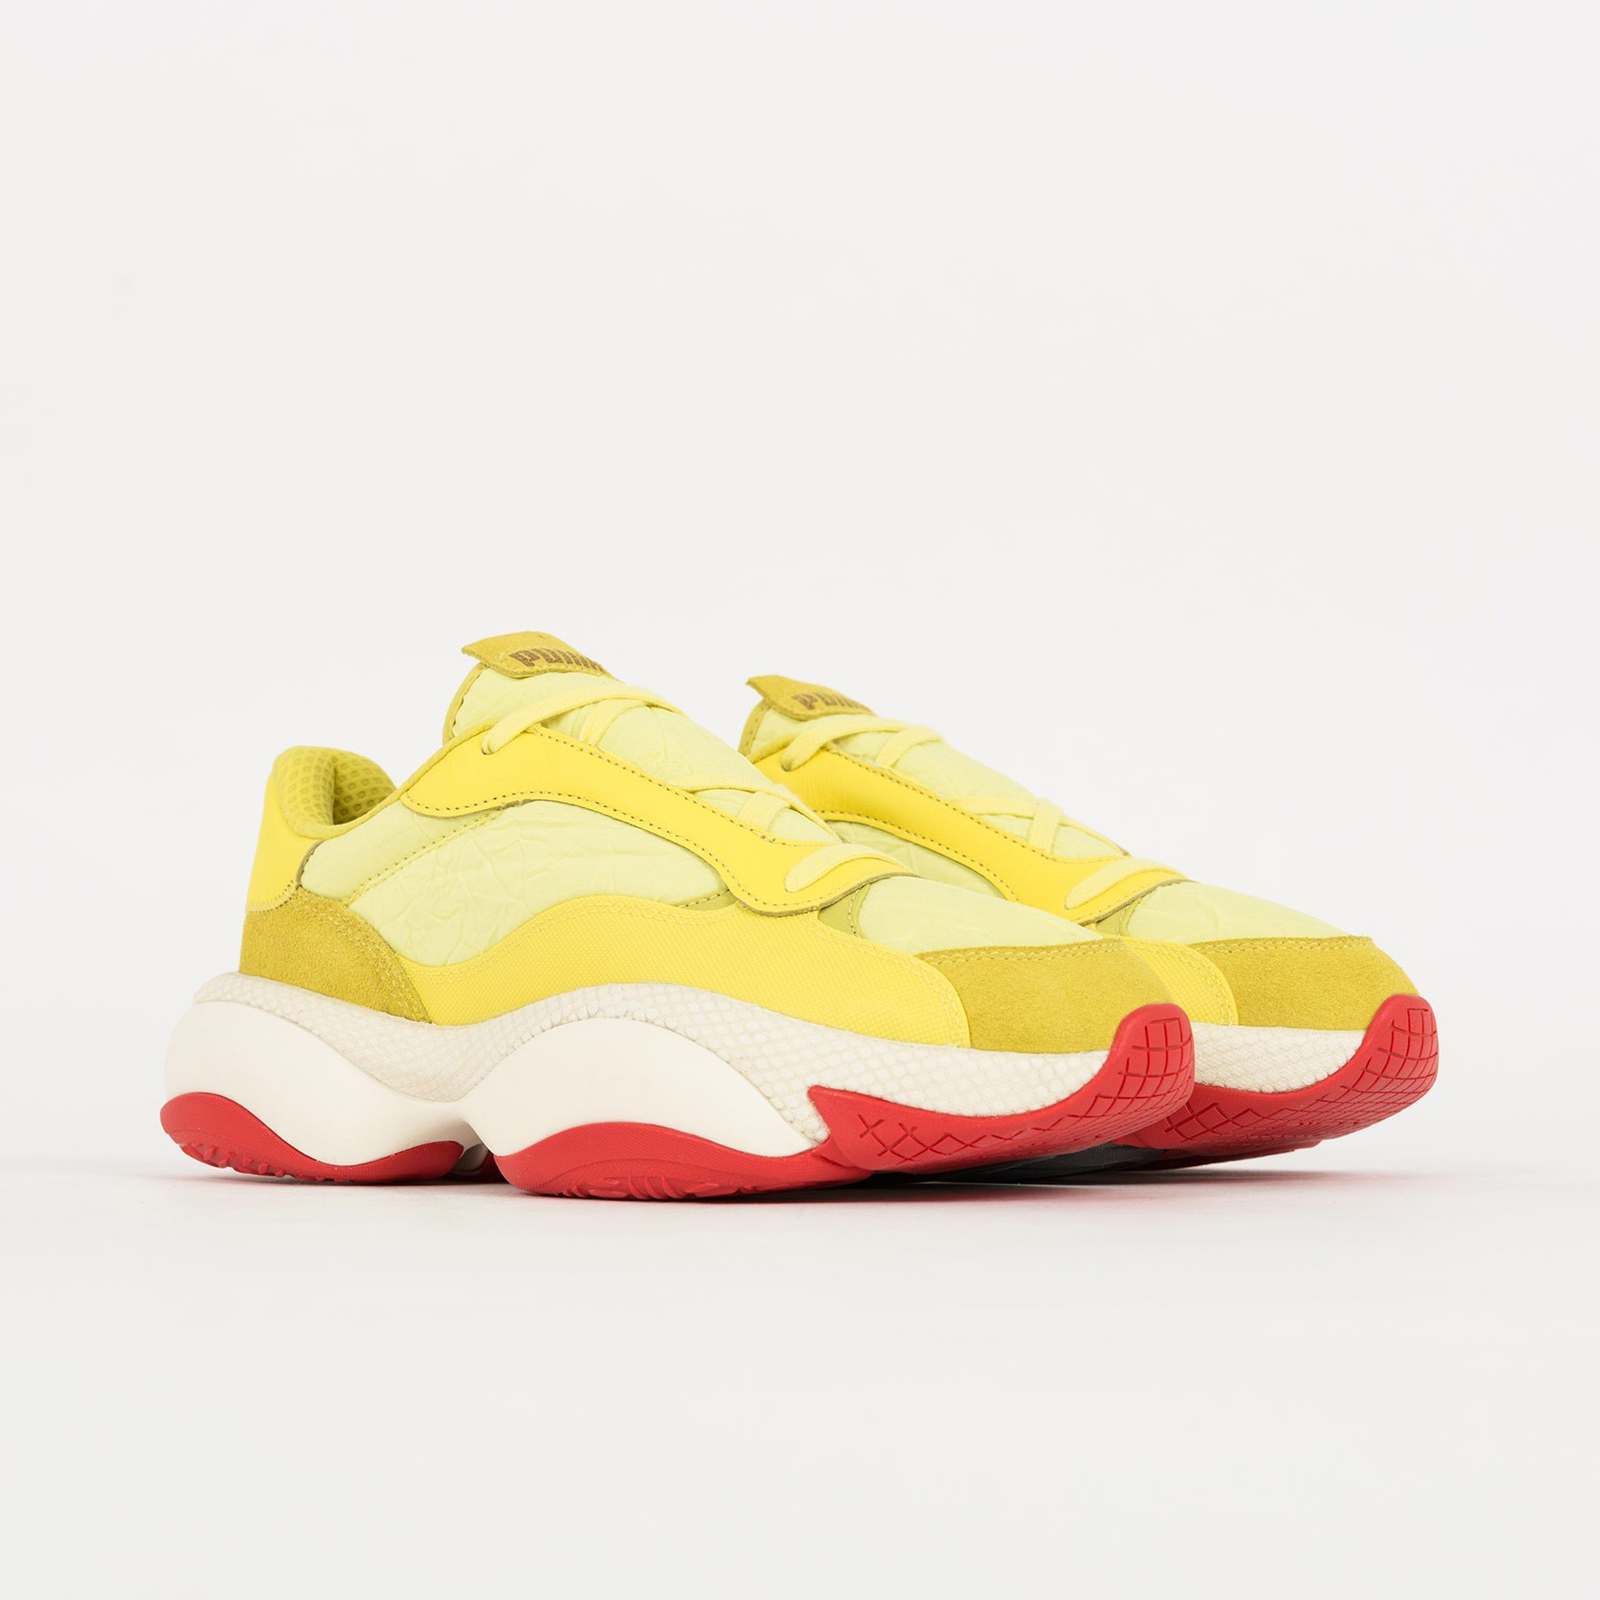 Puma Alteration PN-1 x Jannik Davidsen (Yellow/ Celery/ Limelight/ Red)